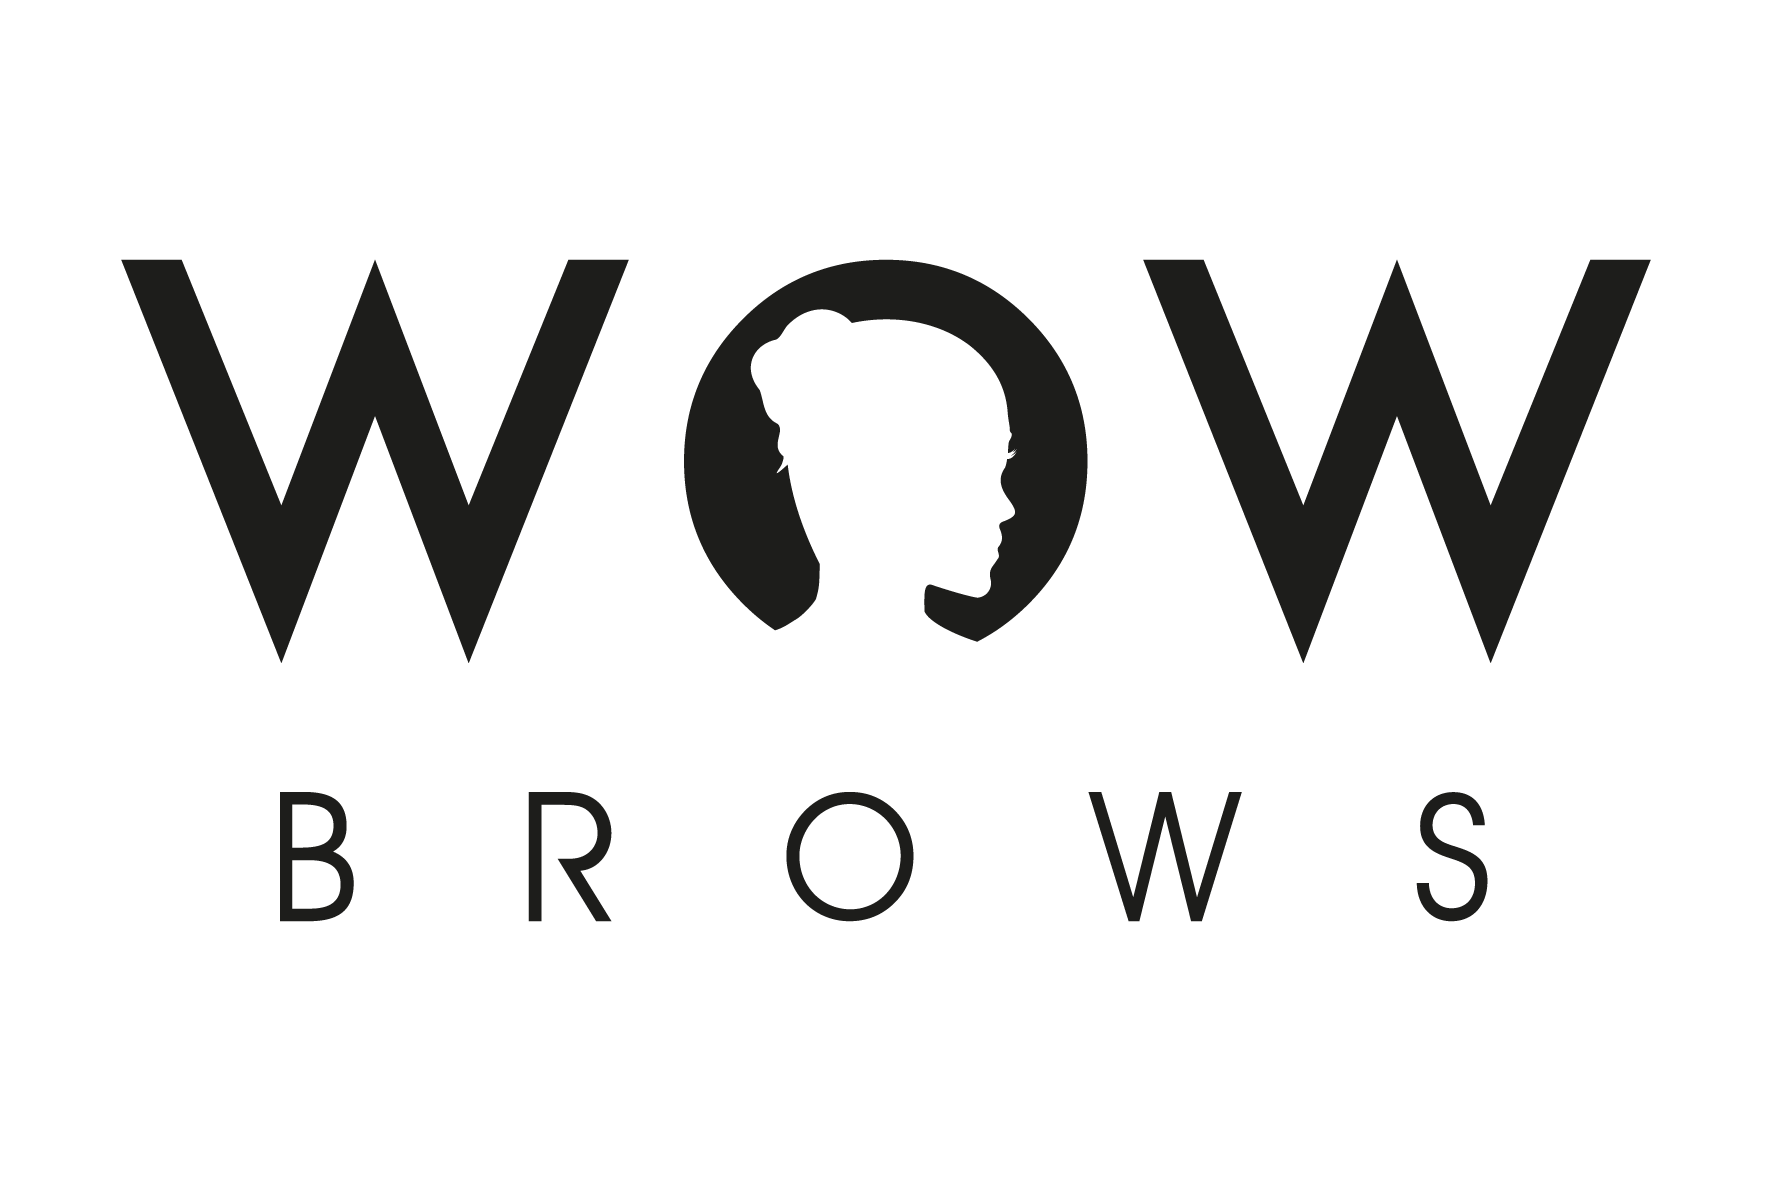 WOW BROWS Logos